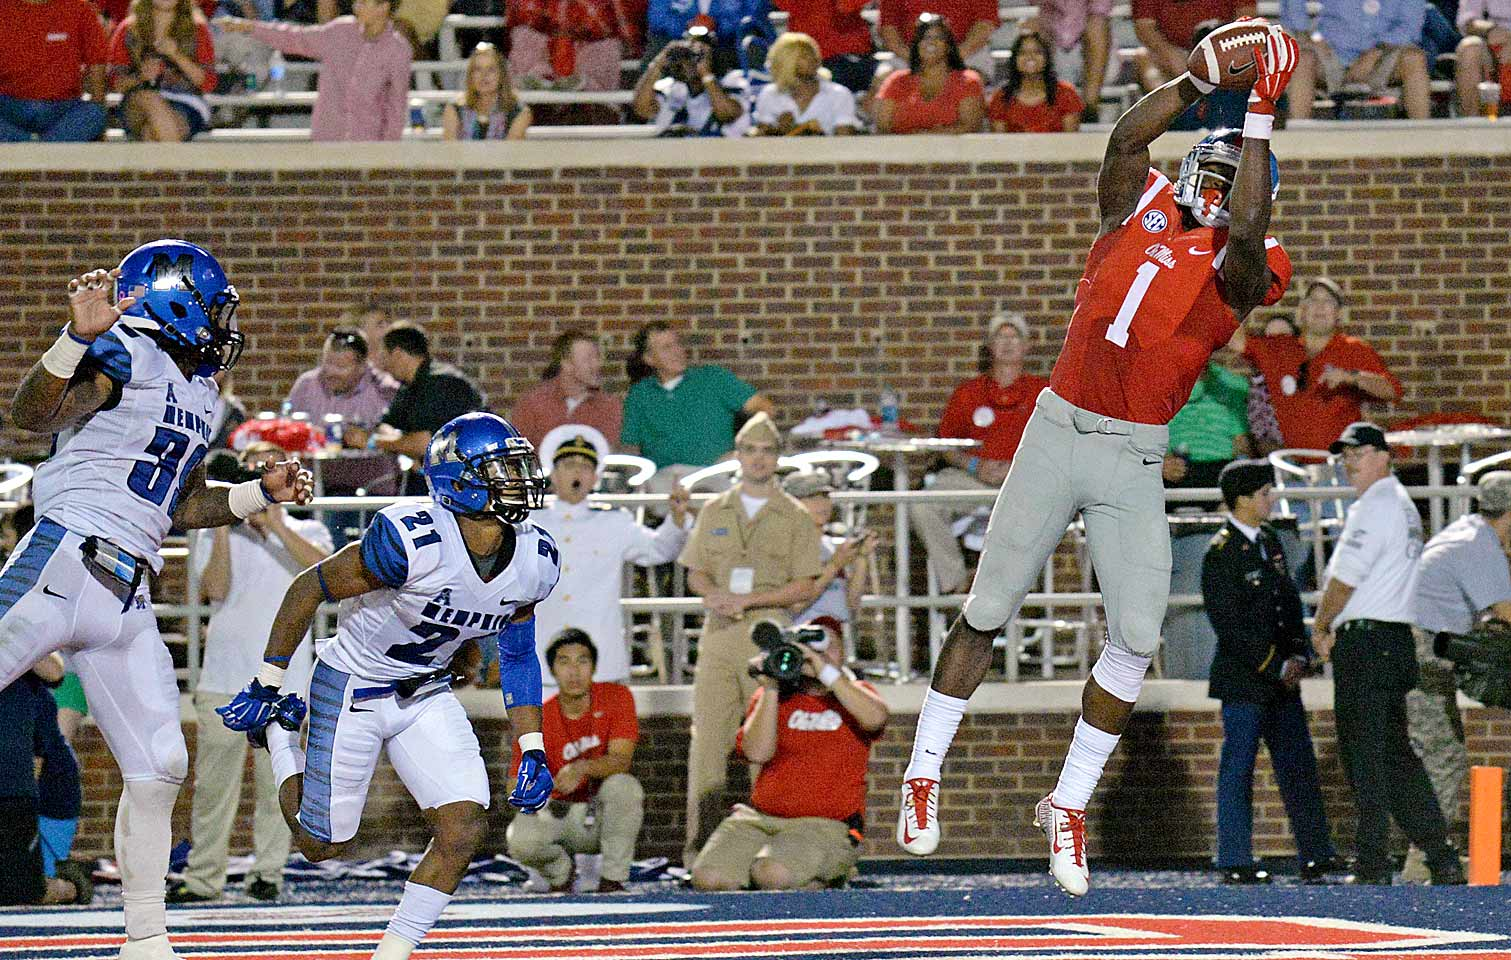 Treadwell's 2014 season ended tragically when he broke his leg against Auburn, but he proved himself to be one of the conference's top receivers during Ole Miss's 7-1 start. The rising junior racked up 632 yards on 48 catches and scored five touchdowns. He's expected to be ready for the start of the season.